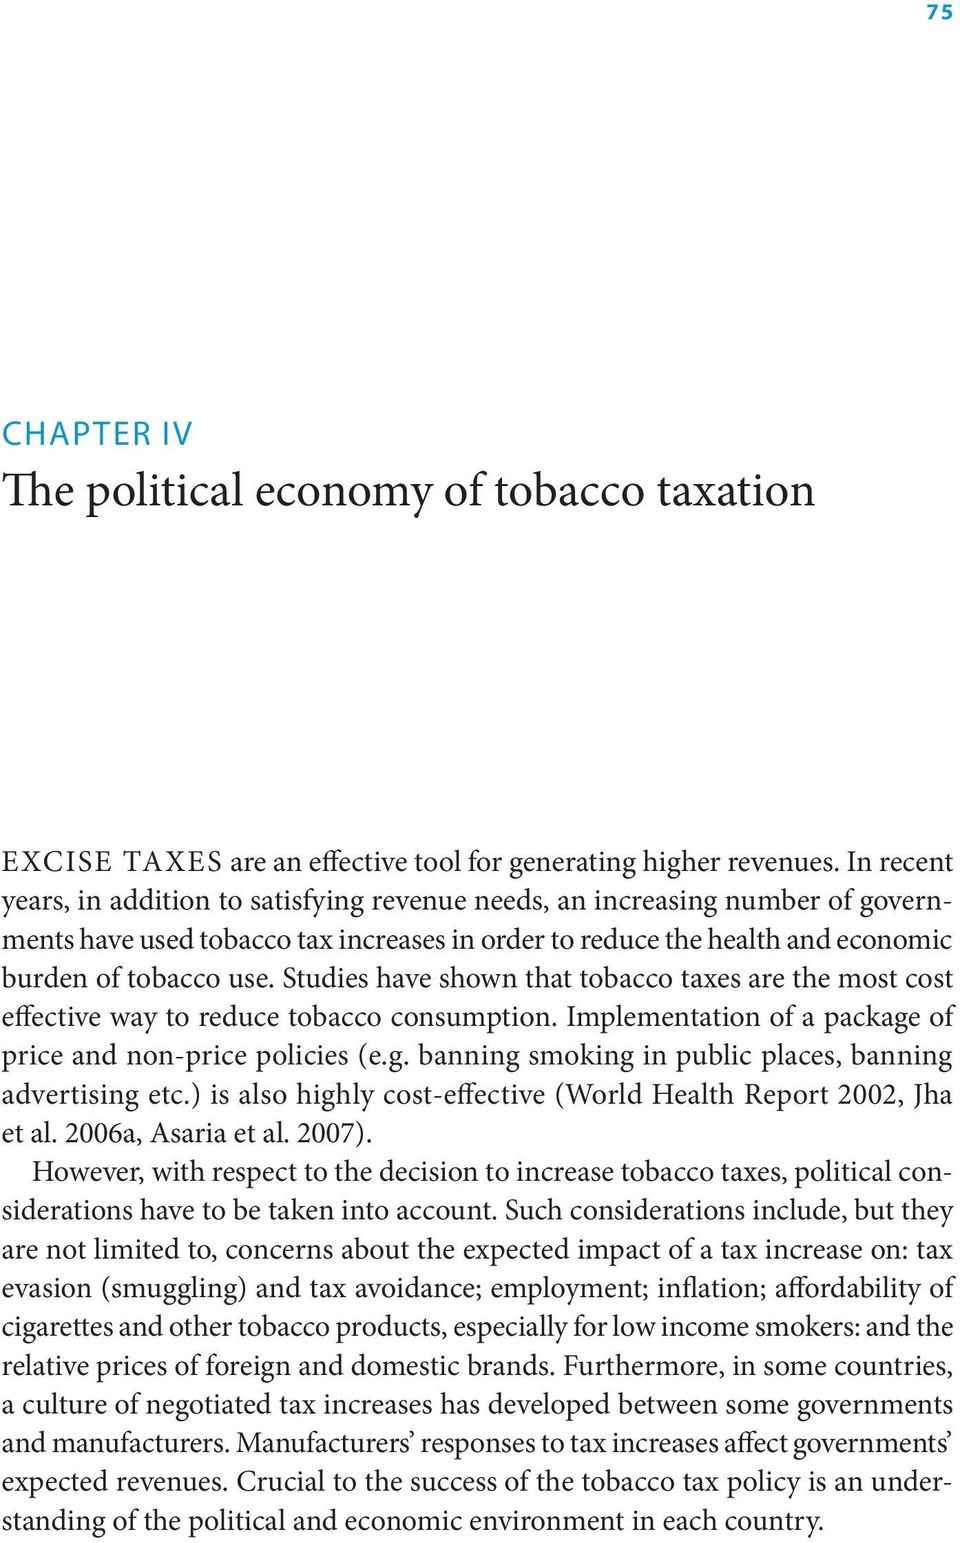 Studies have shown that tobacco taxes are the most cost effective way to reduce tobacco consumption. Implementation of a package of price and non-price policies (e.g. banning smoking in public places, banning advertising etc.